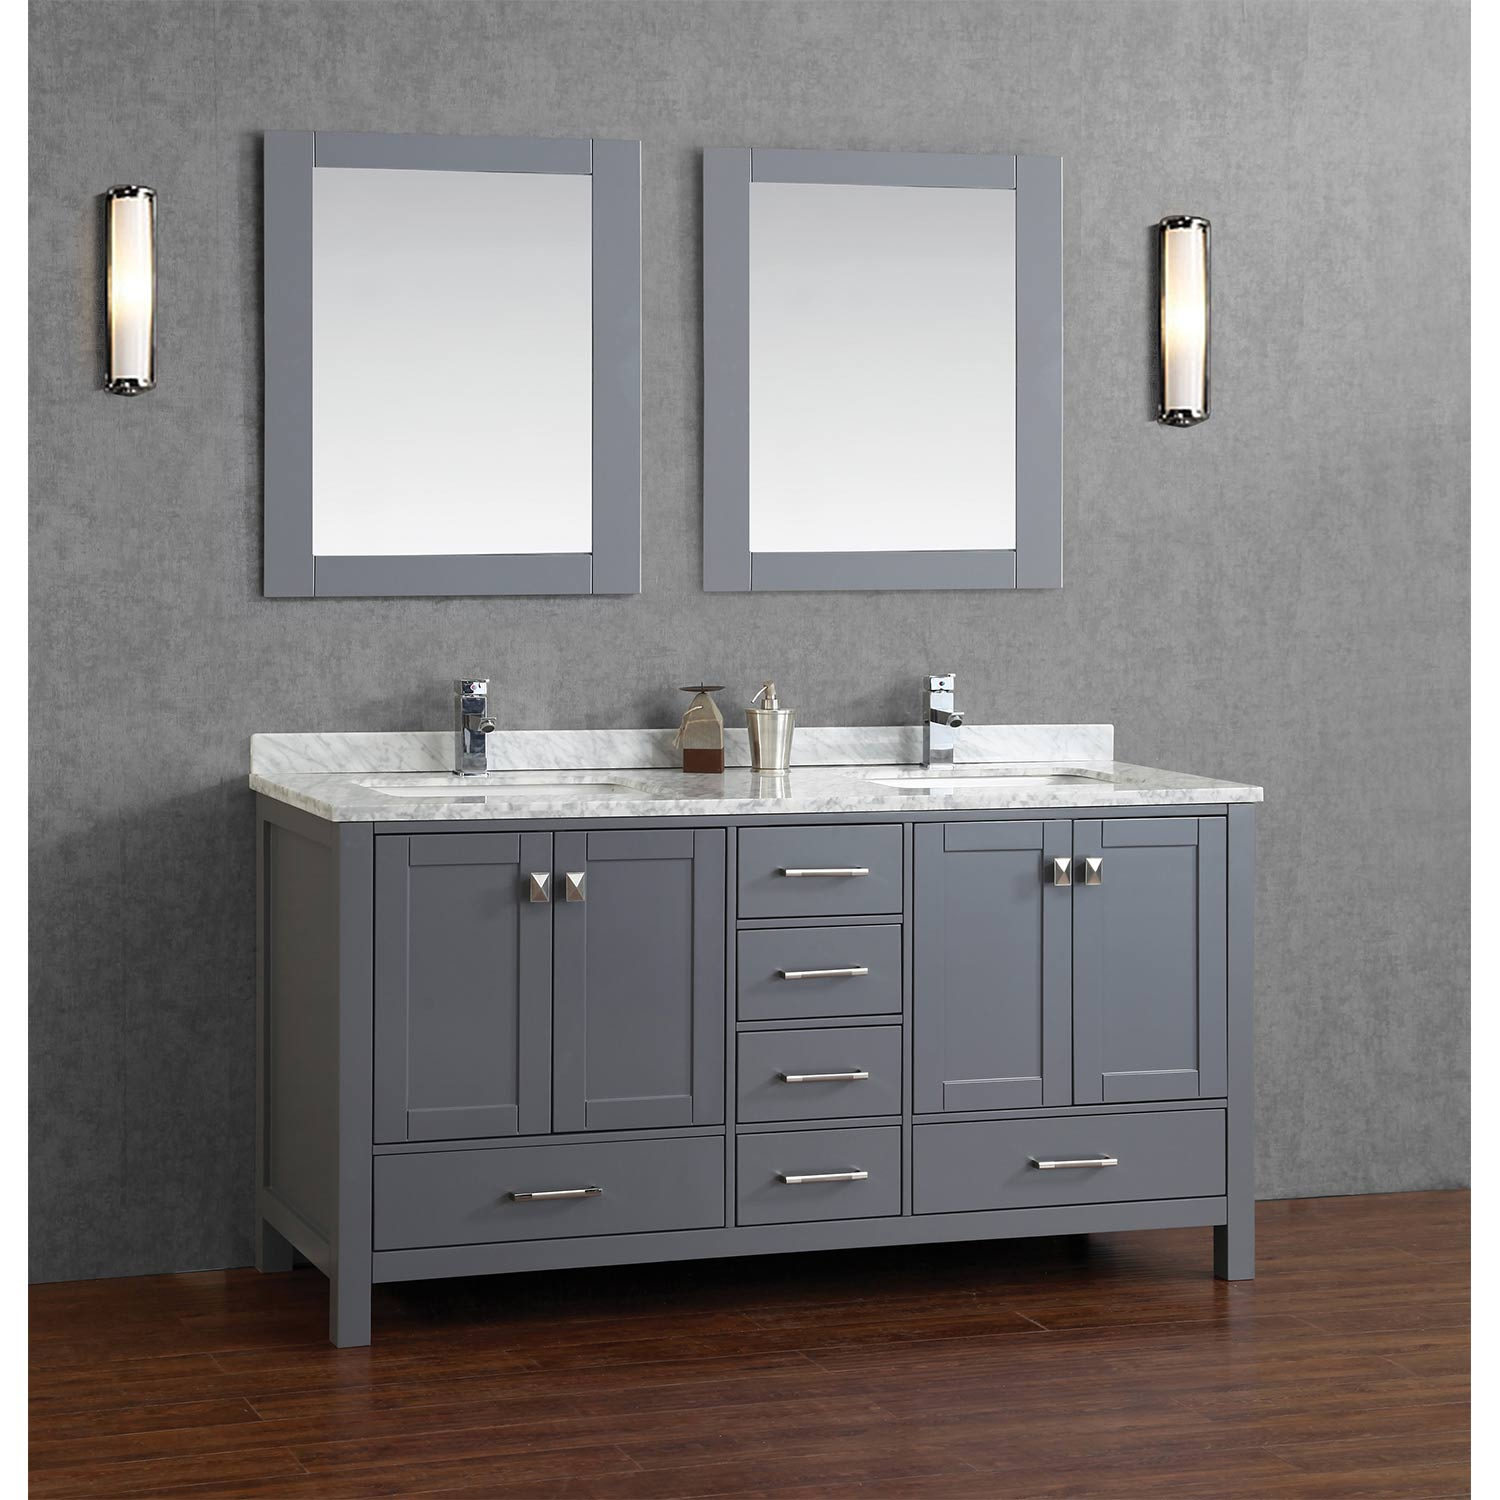 Bathroom Double Vanity : 72-double-sink-bathroom-vanity-charcoal-grey-hd-13001-1.jpg